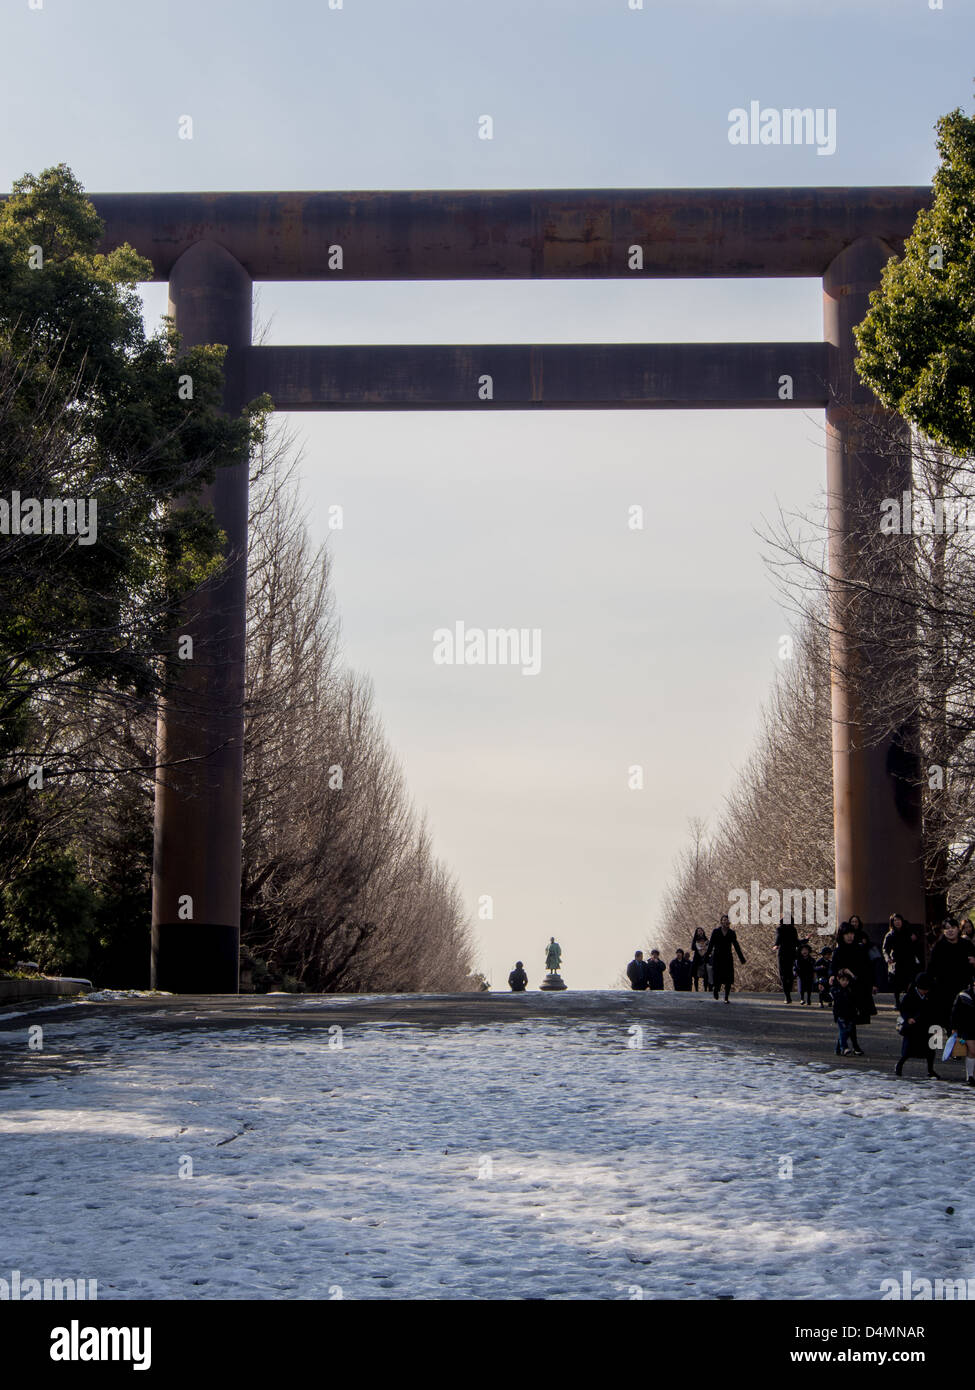 Daiichi Torii at Yasukuni Shrine, Tokyo in winter.  Made of steel, 25 meters high, erected in 1974. - Stock Image